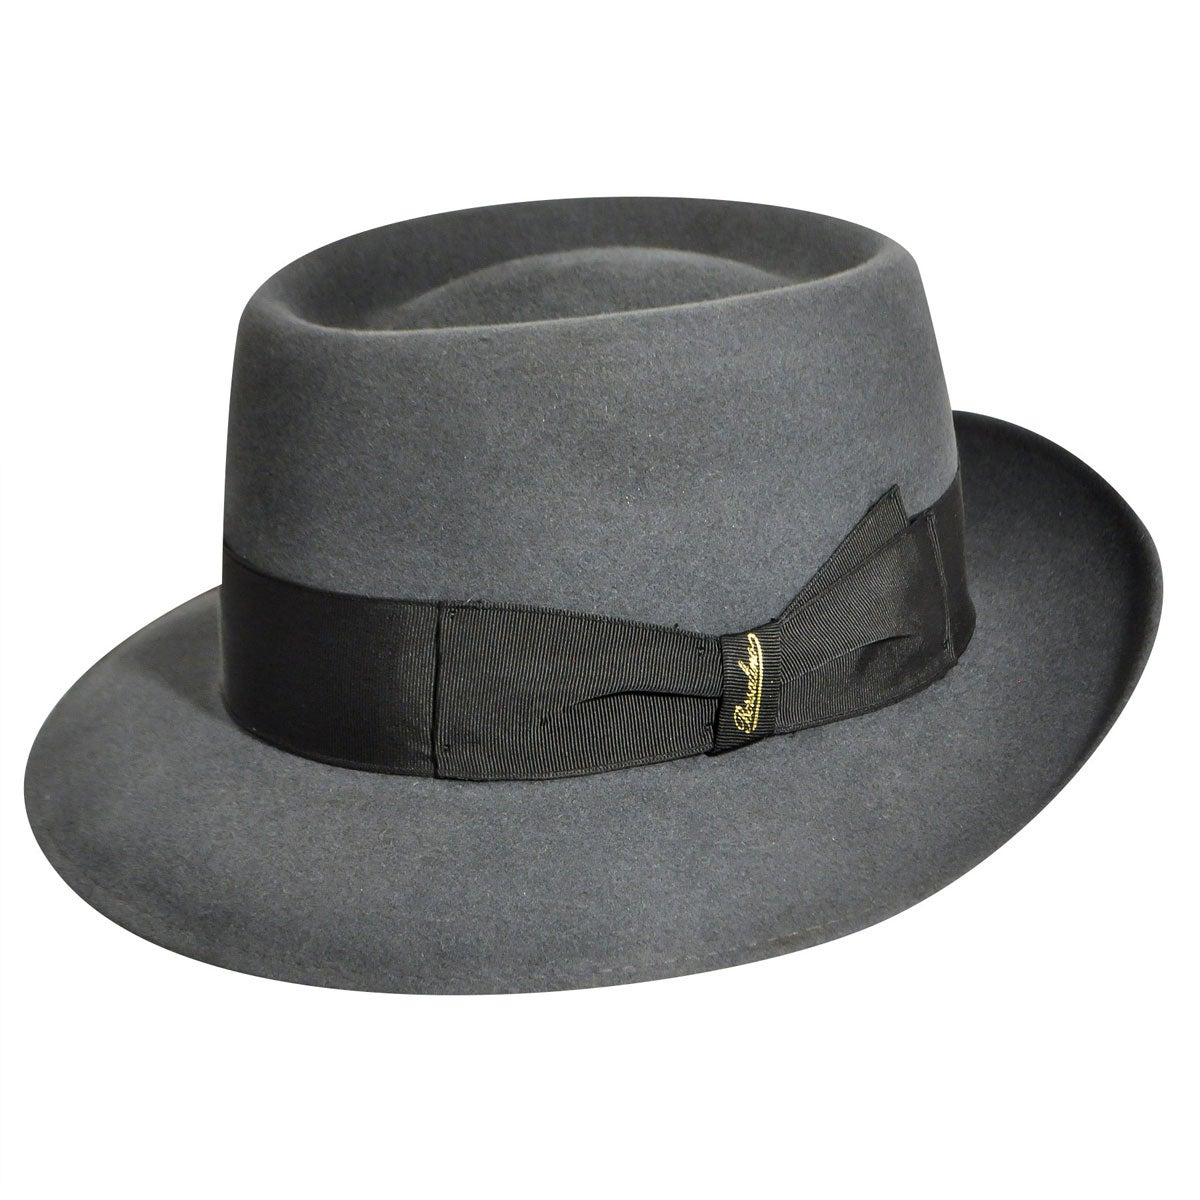 1940s Style Mens Hats Brindisi Fedora $342.00 AT vintagedancer.com